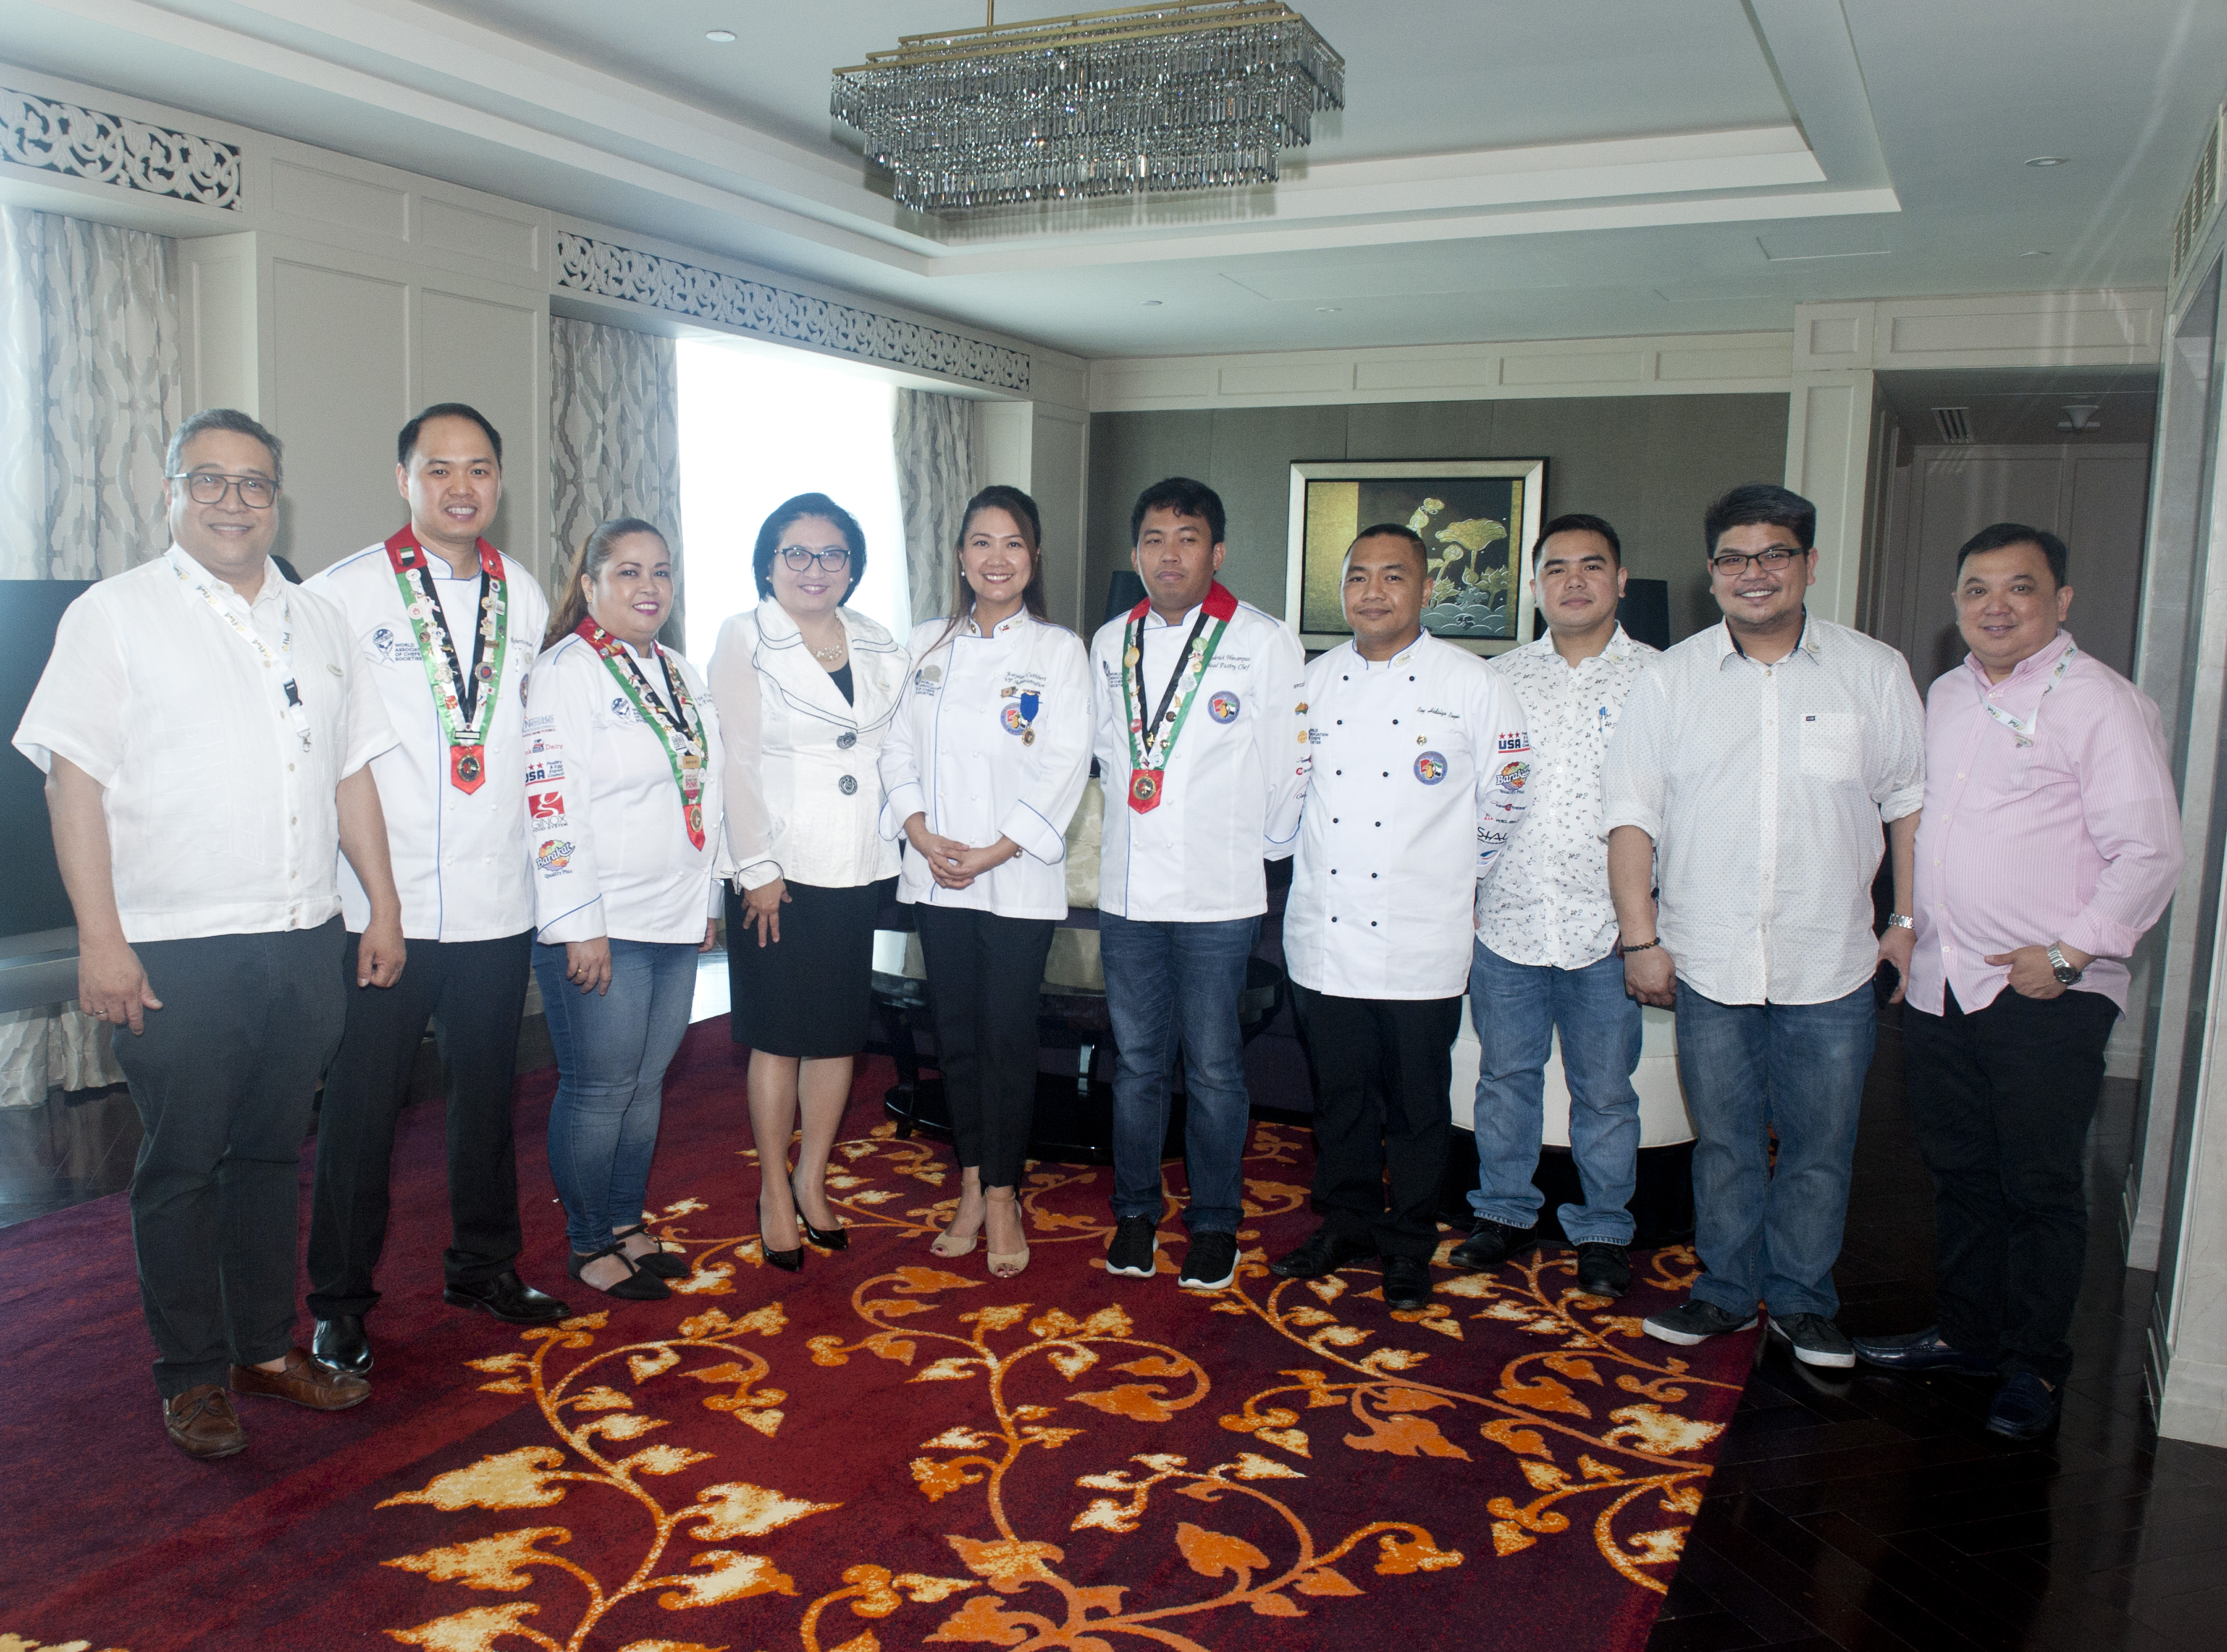 Filfood Lunch at the Residence of H.E. Ambassador Hjacyeelyn M Quintana